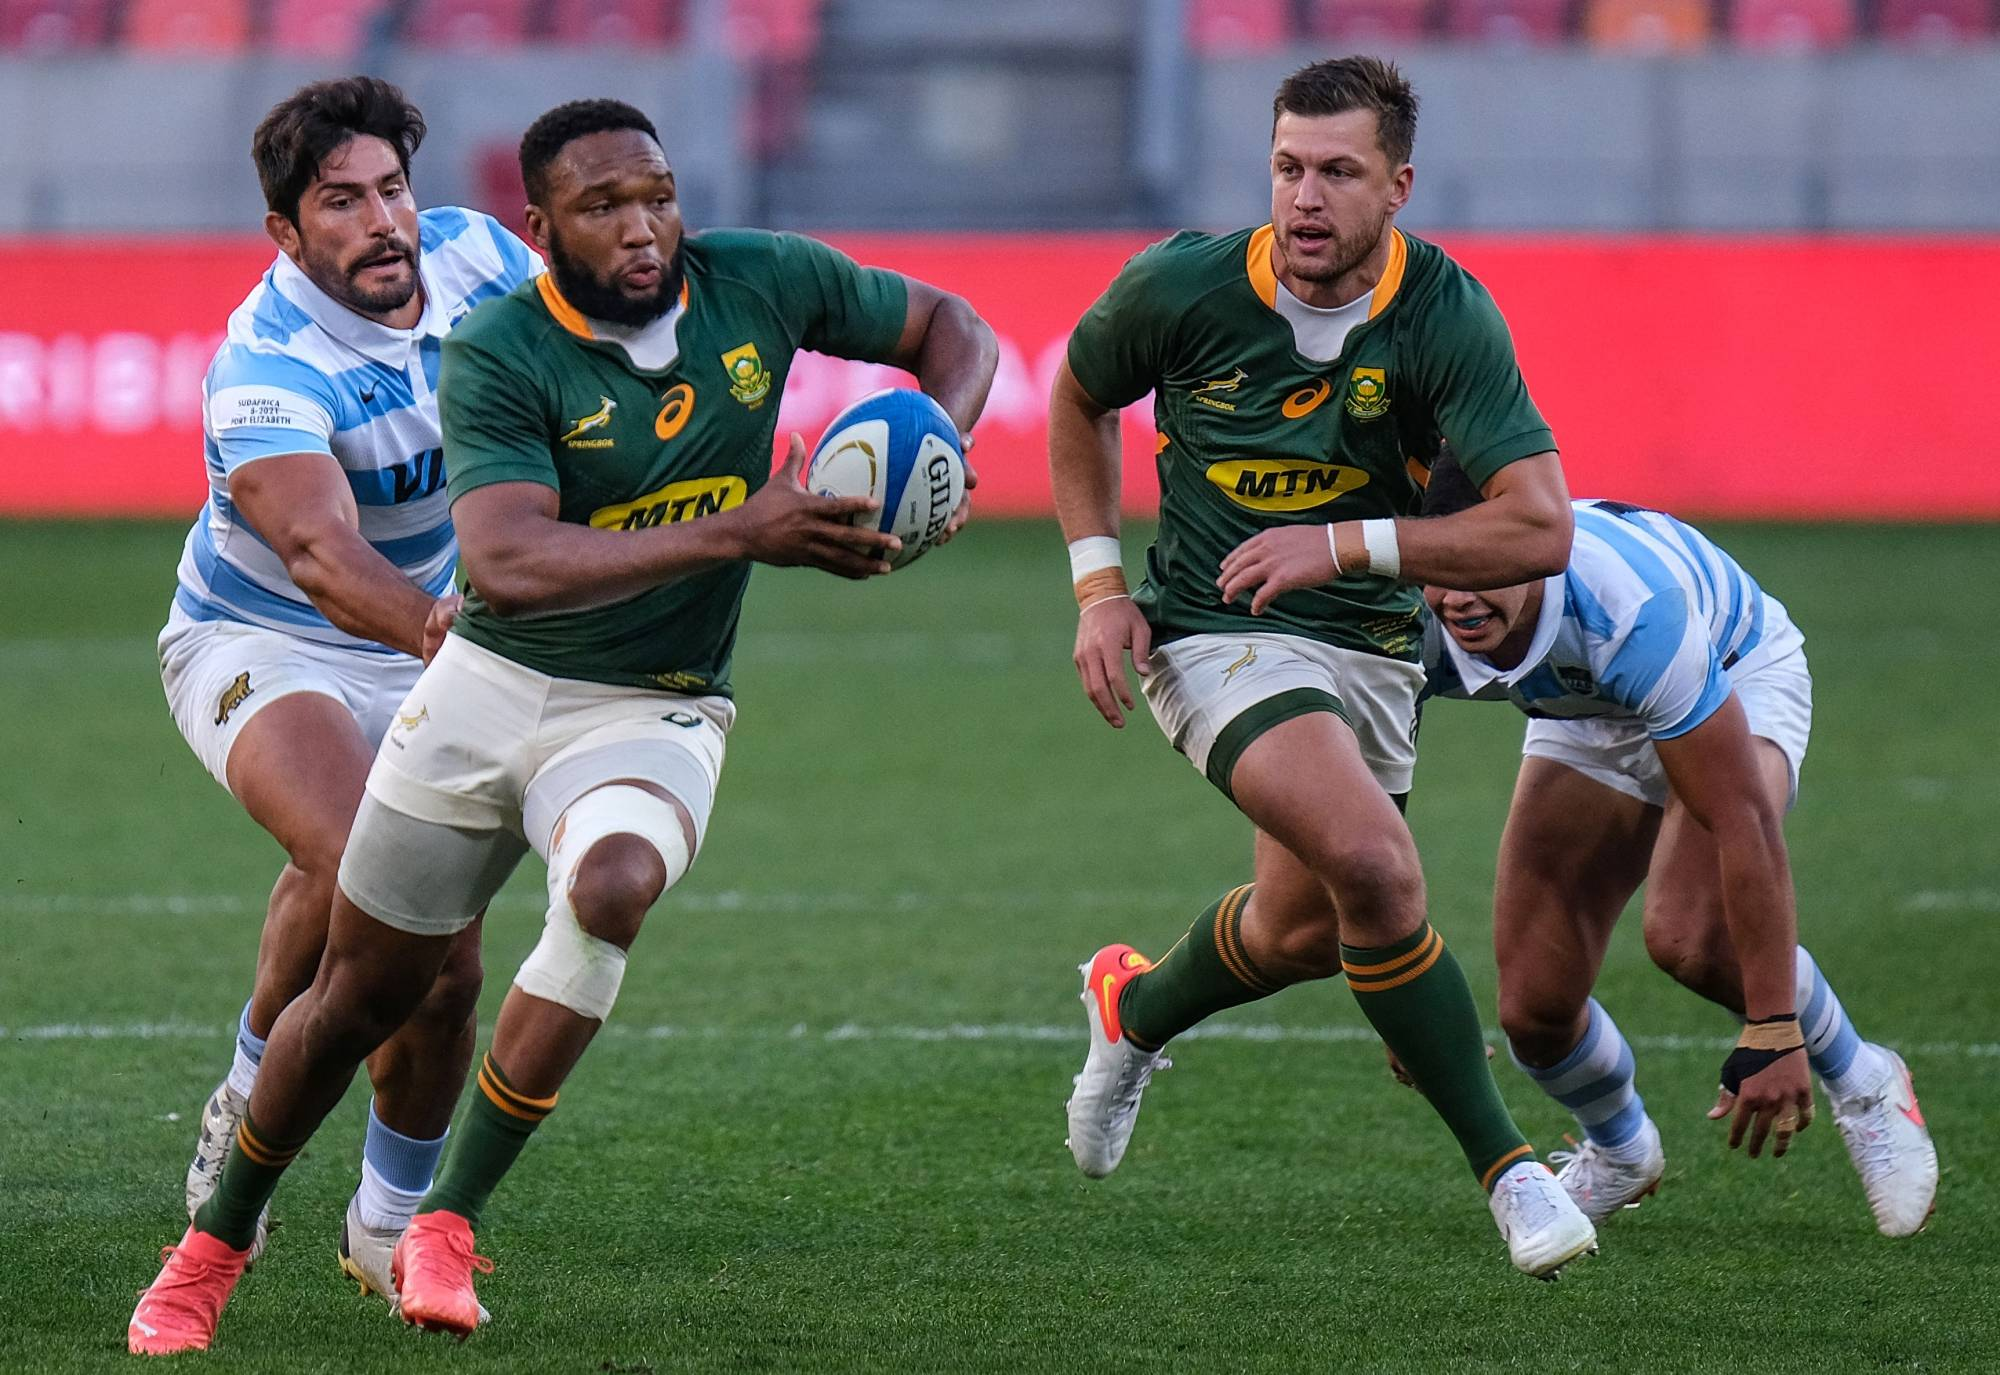 South Africa center Lukhanyo Am runs with the ball during a Rugby Championship match between the Springboks and Argentina on Saturday in Gqeberha (formerly Port Elizabeth), South Africa. | AFP-JIJI